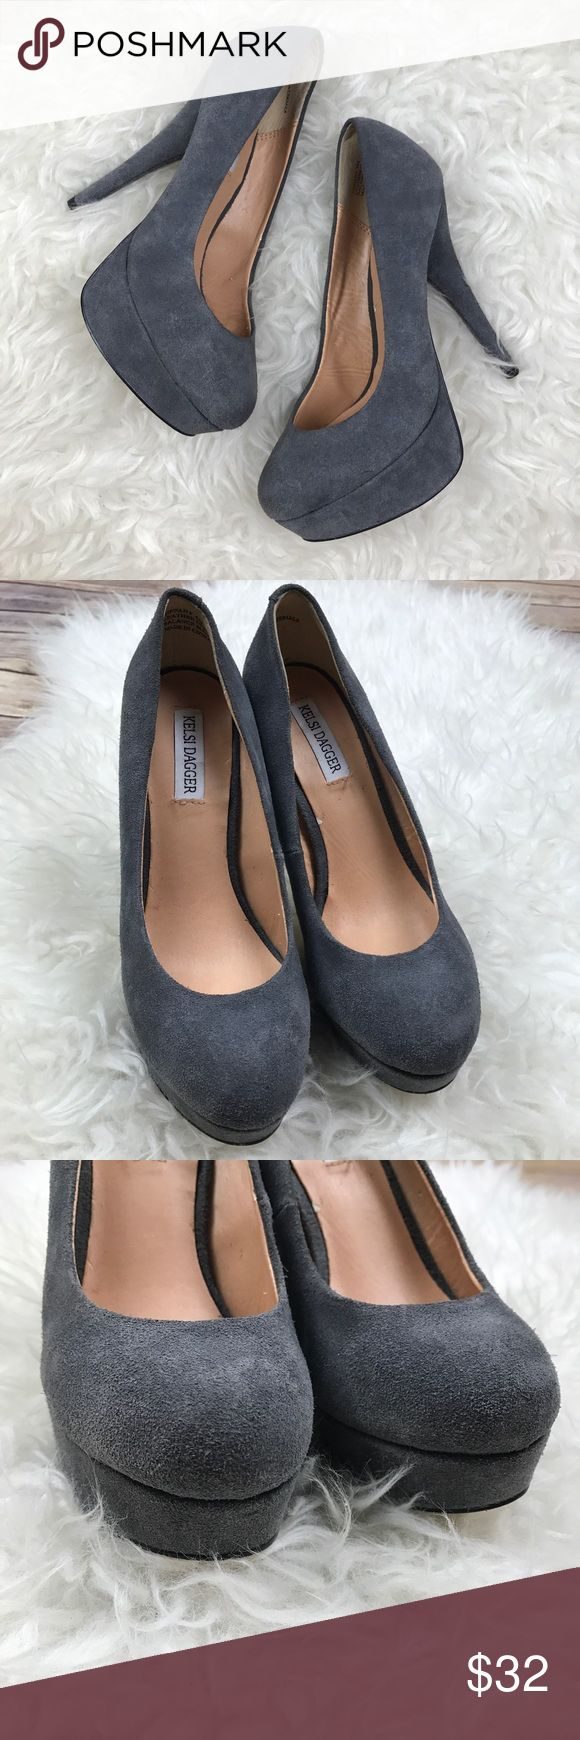 "Kelsi Dagger Gray Suede Tiffany Platforms Good condition Kelsi Dagger Gray Suede Tiffany Platform Pumps. Size 6. Leather Suede. Heels are 5.5"", platforms are 1.5"". No trades, offers welcome. Kelsi Dagger Shoes Platforms"